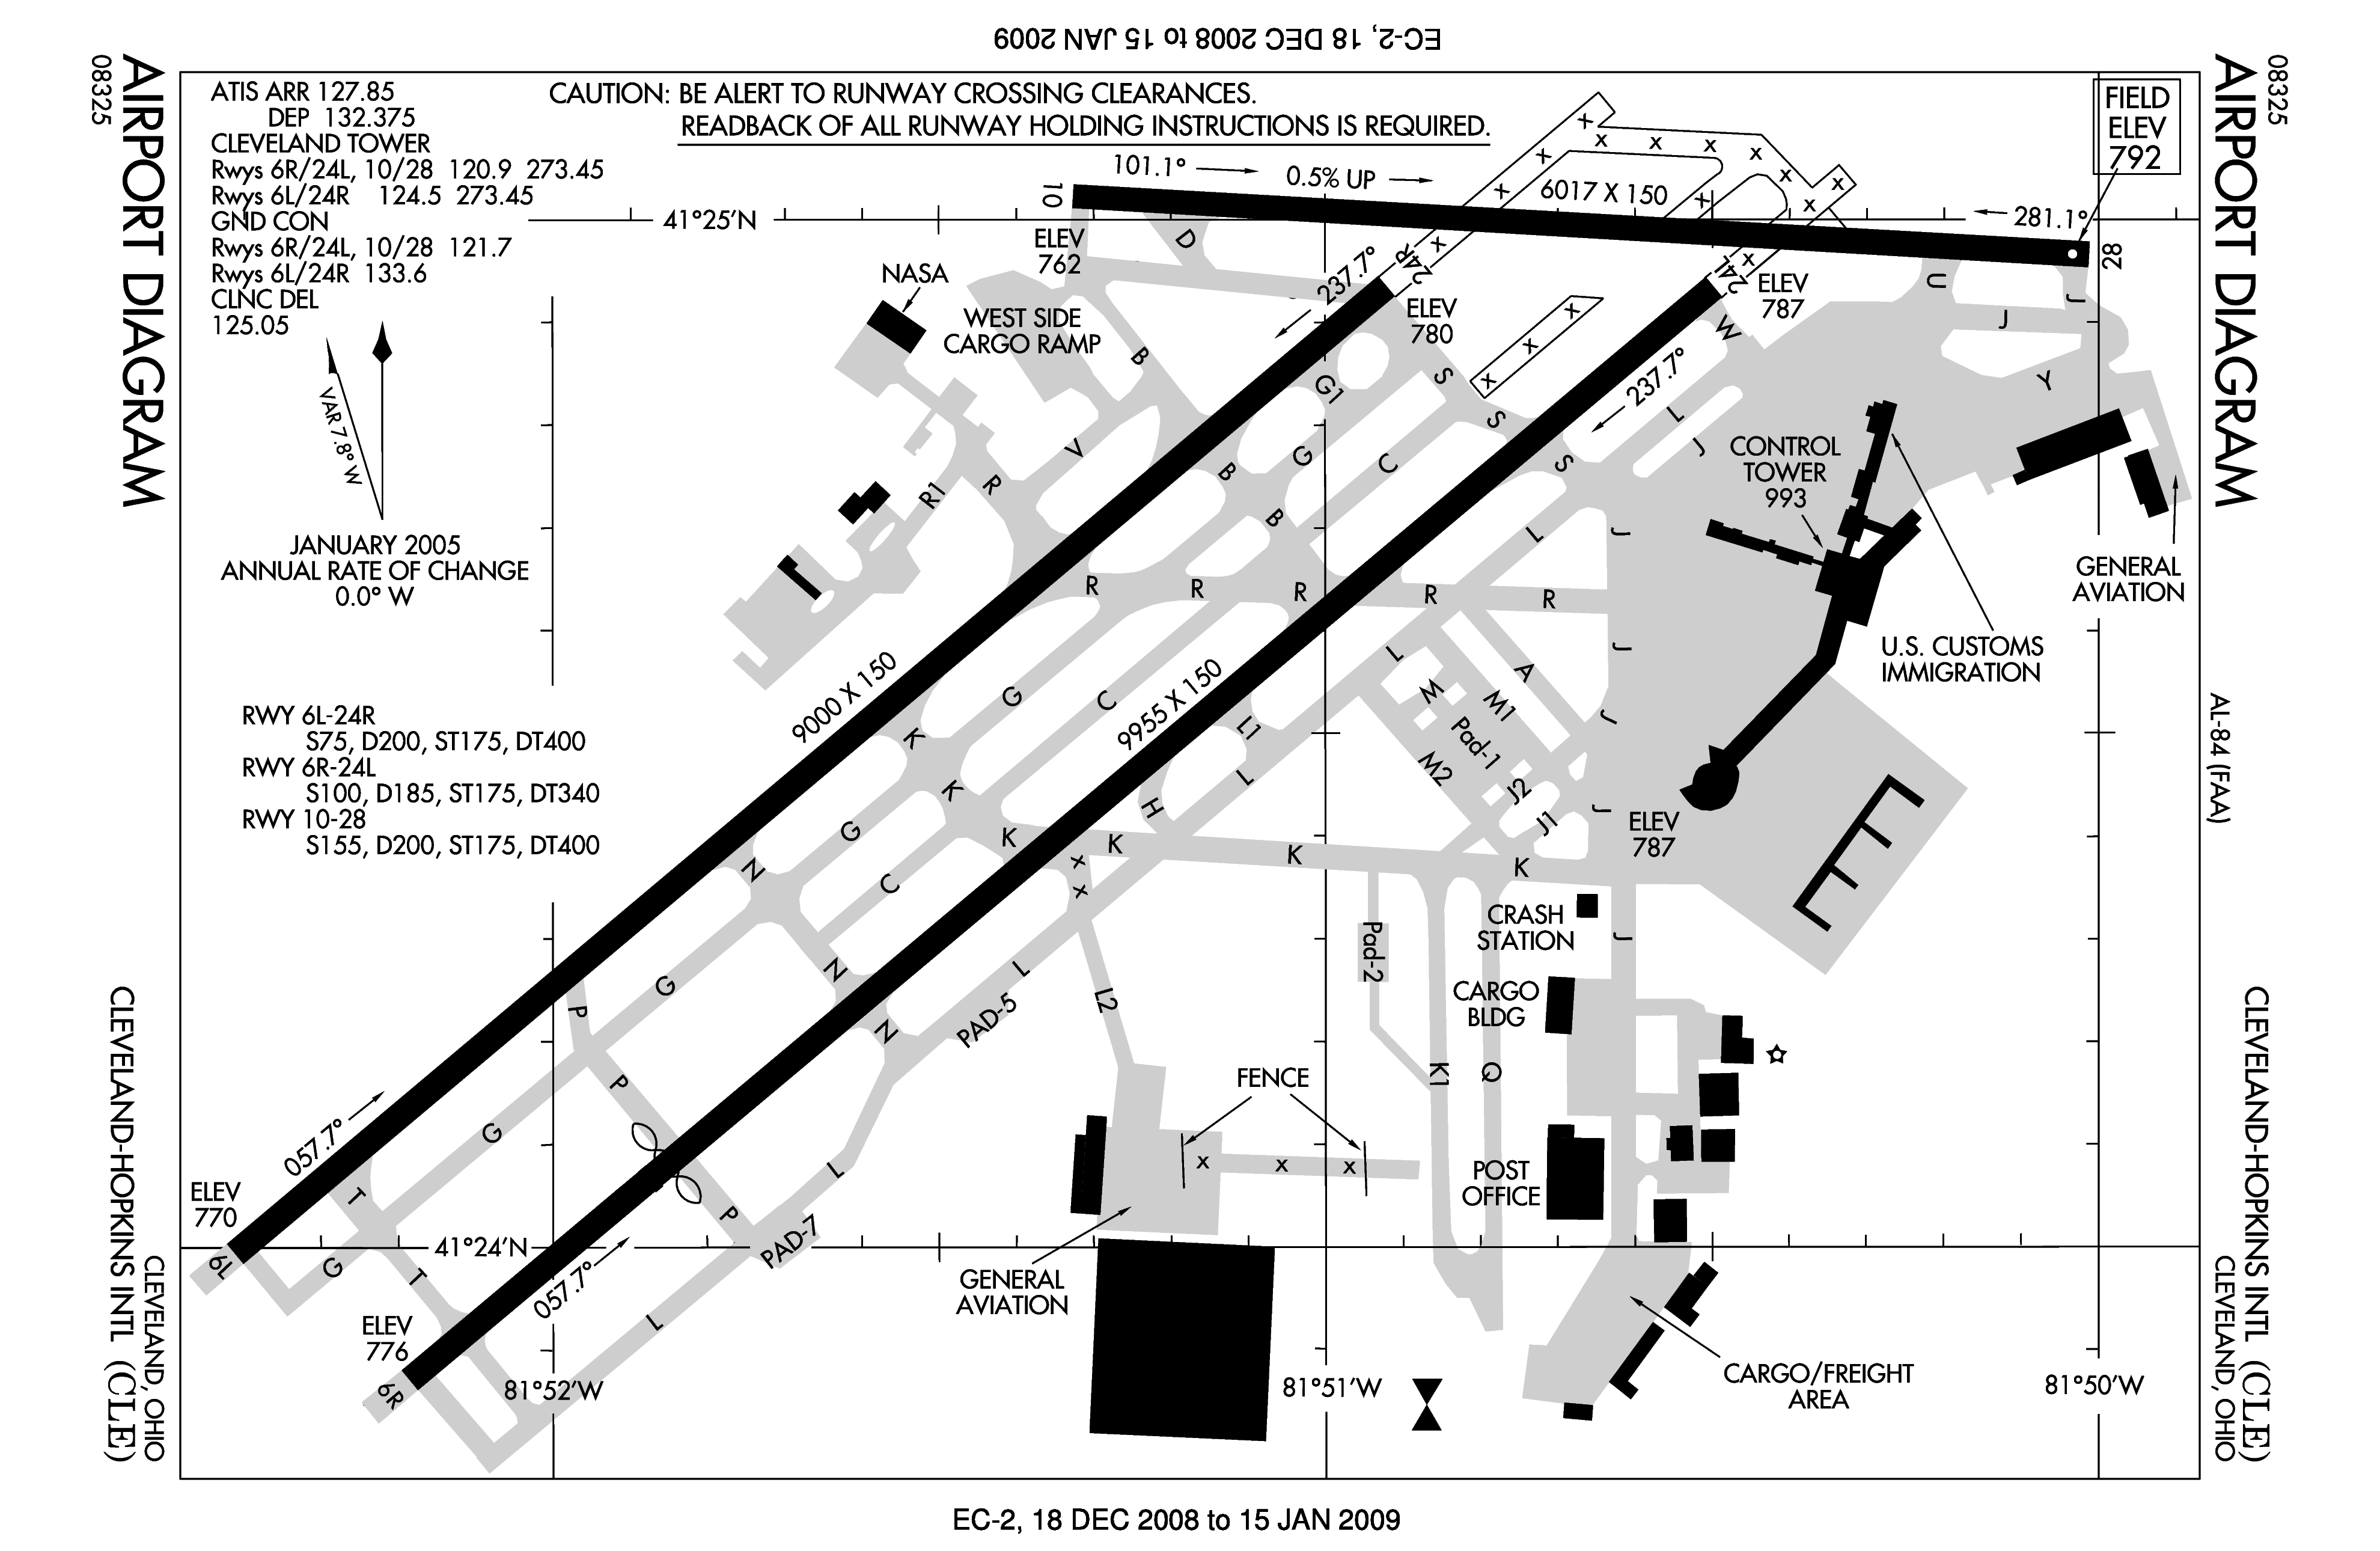 Cleveland hopkins international airport operational history pooptronica Gallery